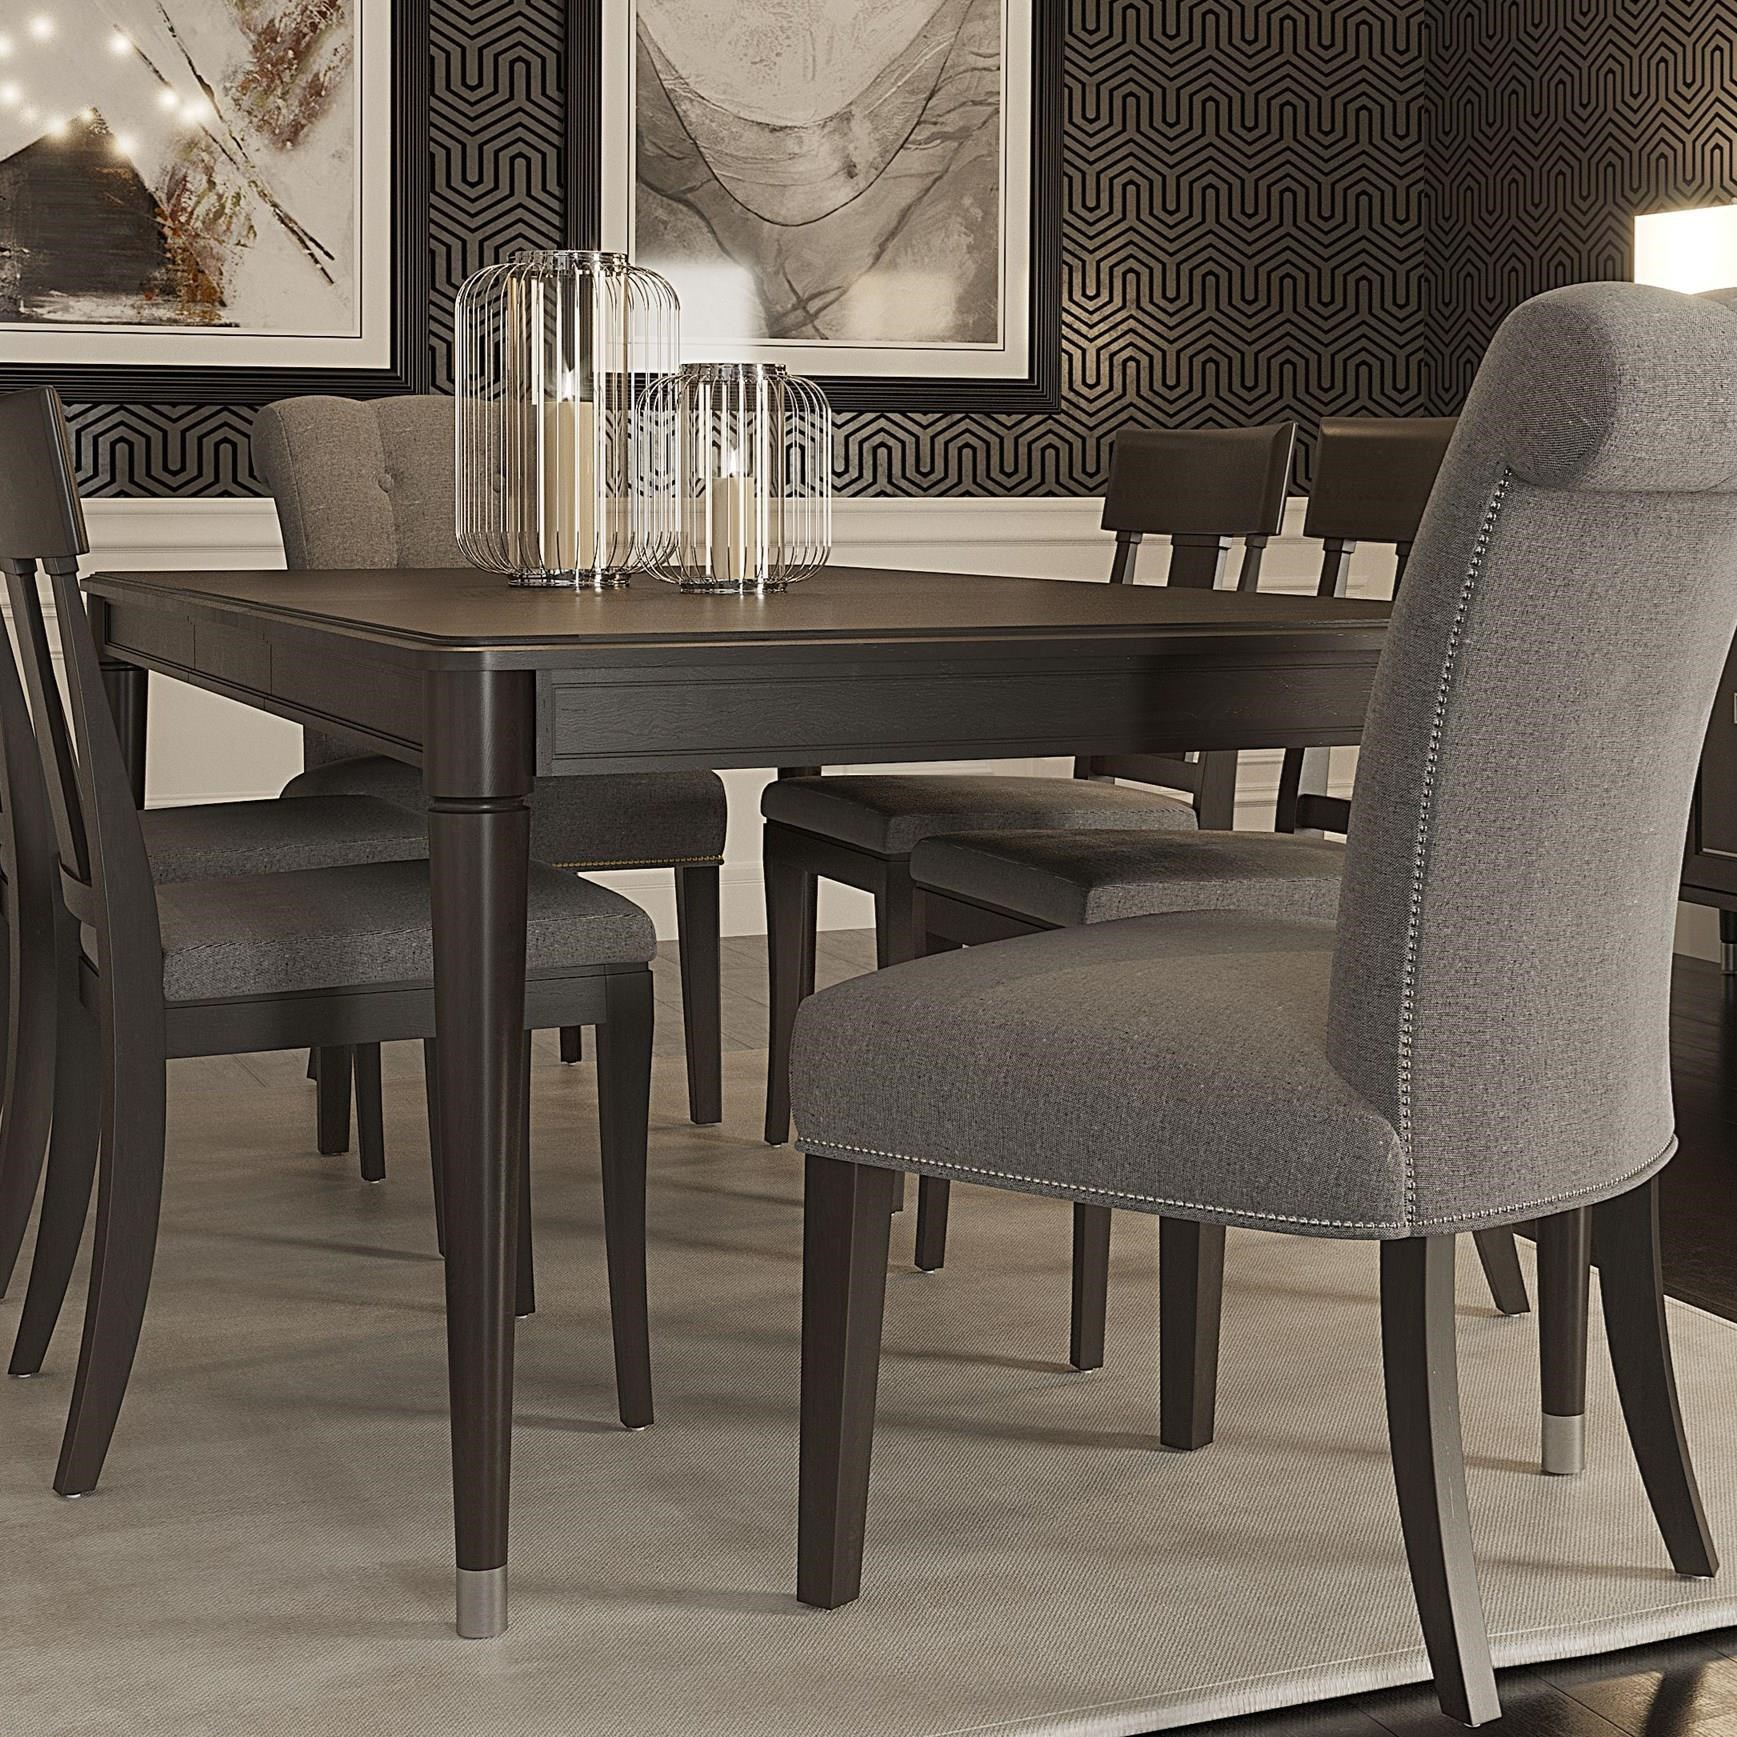 Classic Customizable Rectangular Dining Table by Canadel at Dinette Depot